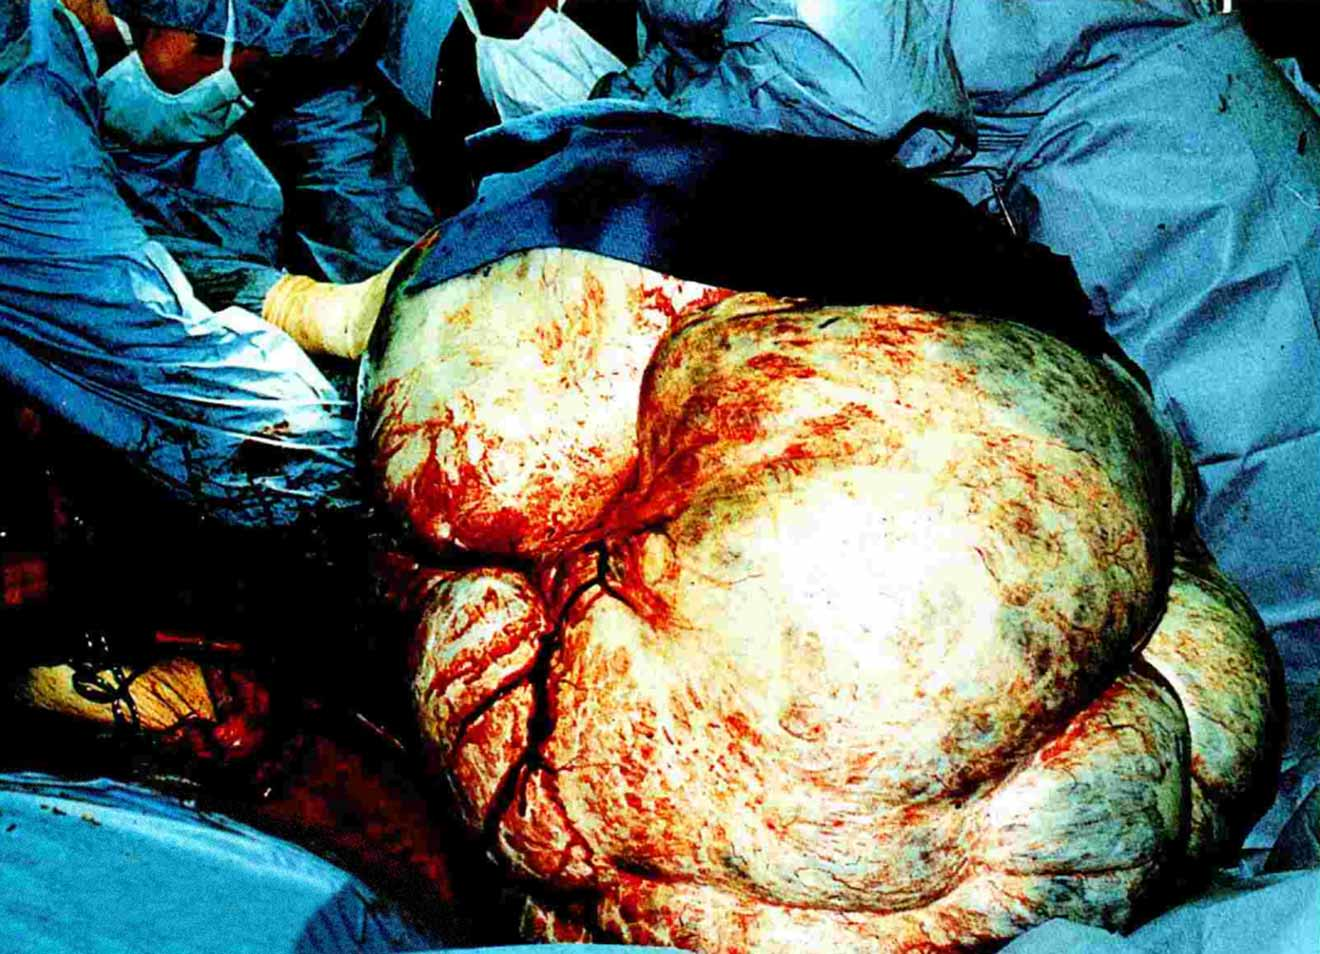 Largest tumour - removed intact